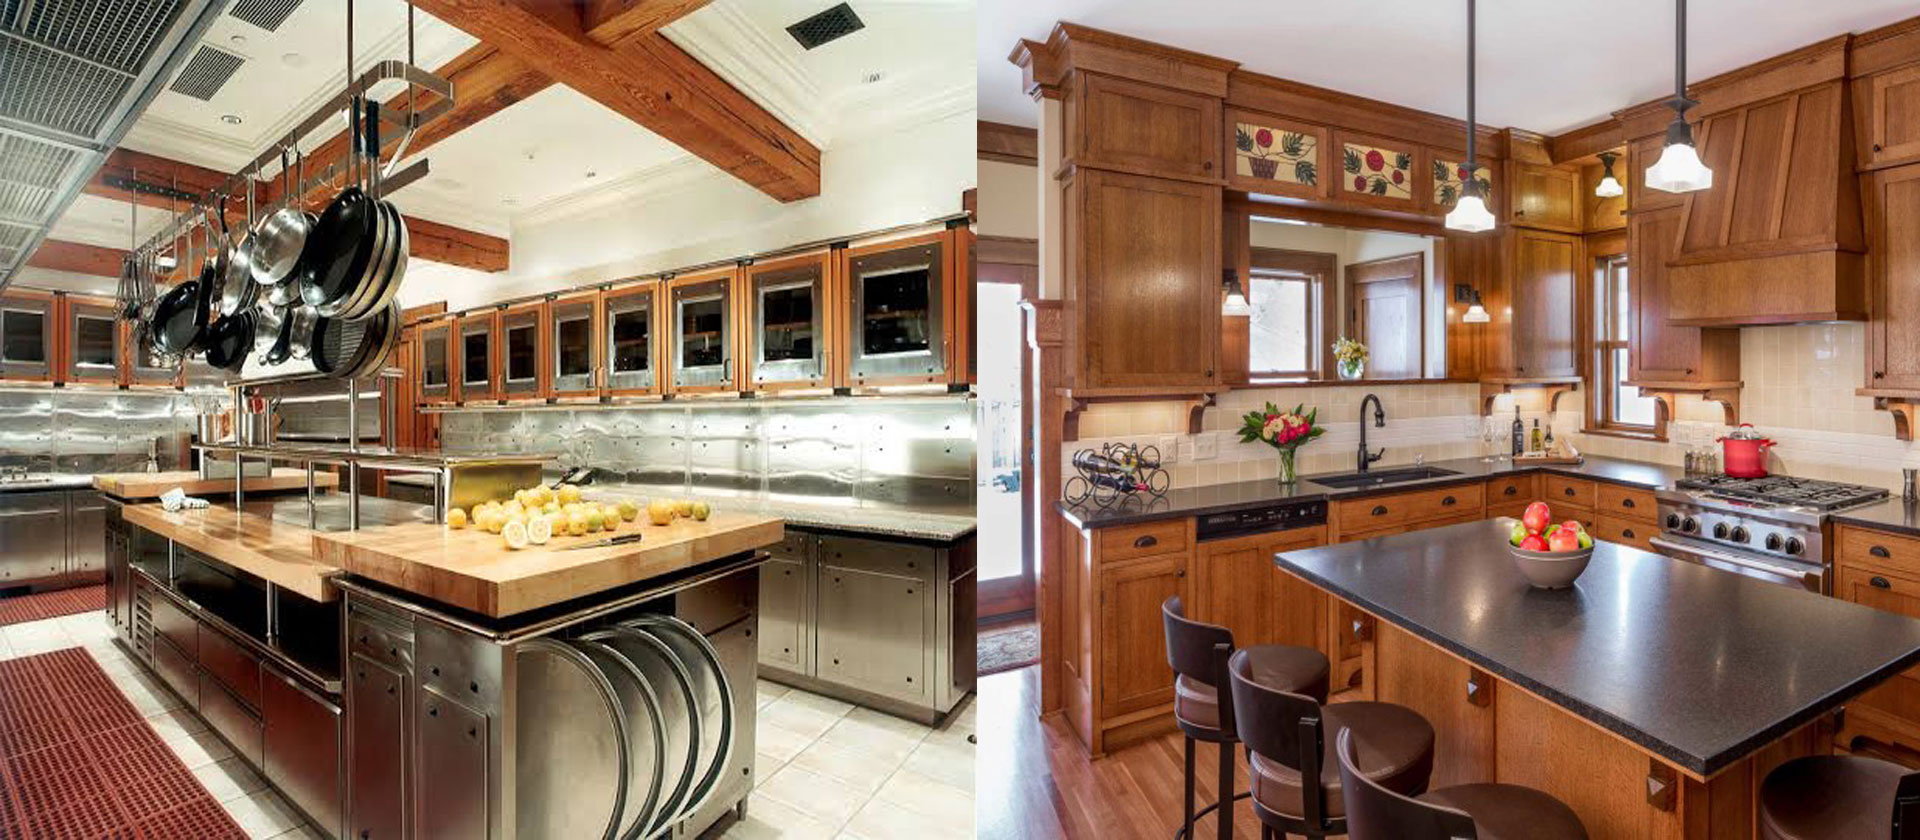 Some Fundamental Considerations In Bathroom And Kitchen Remodeling